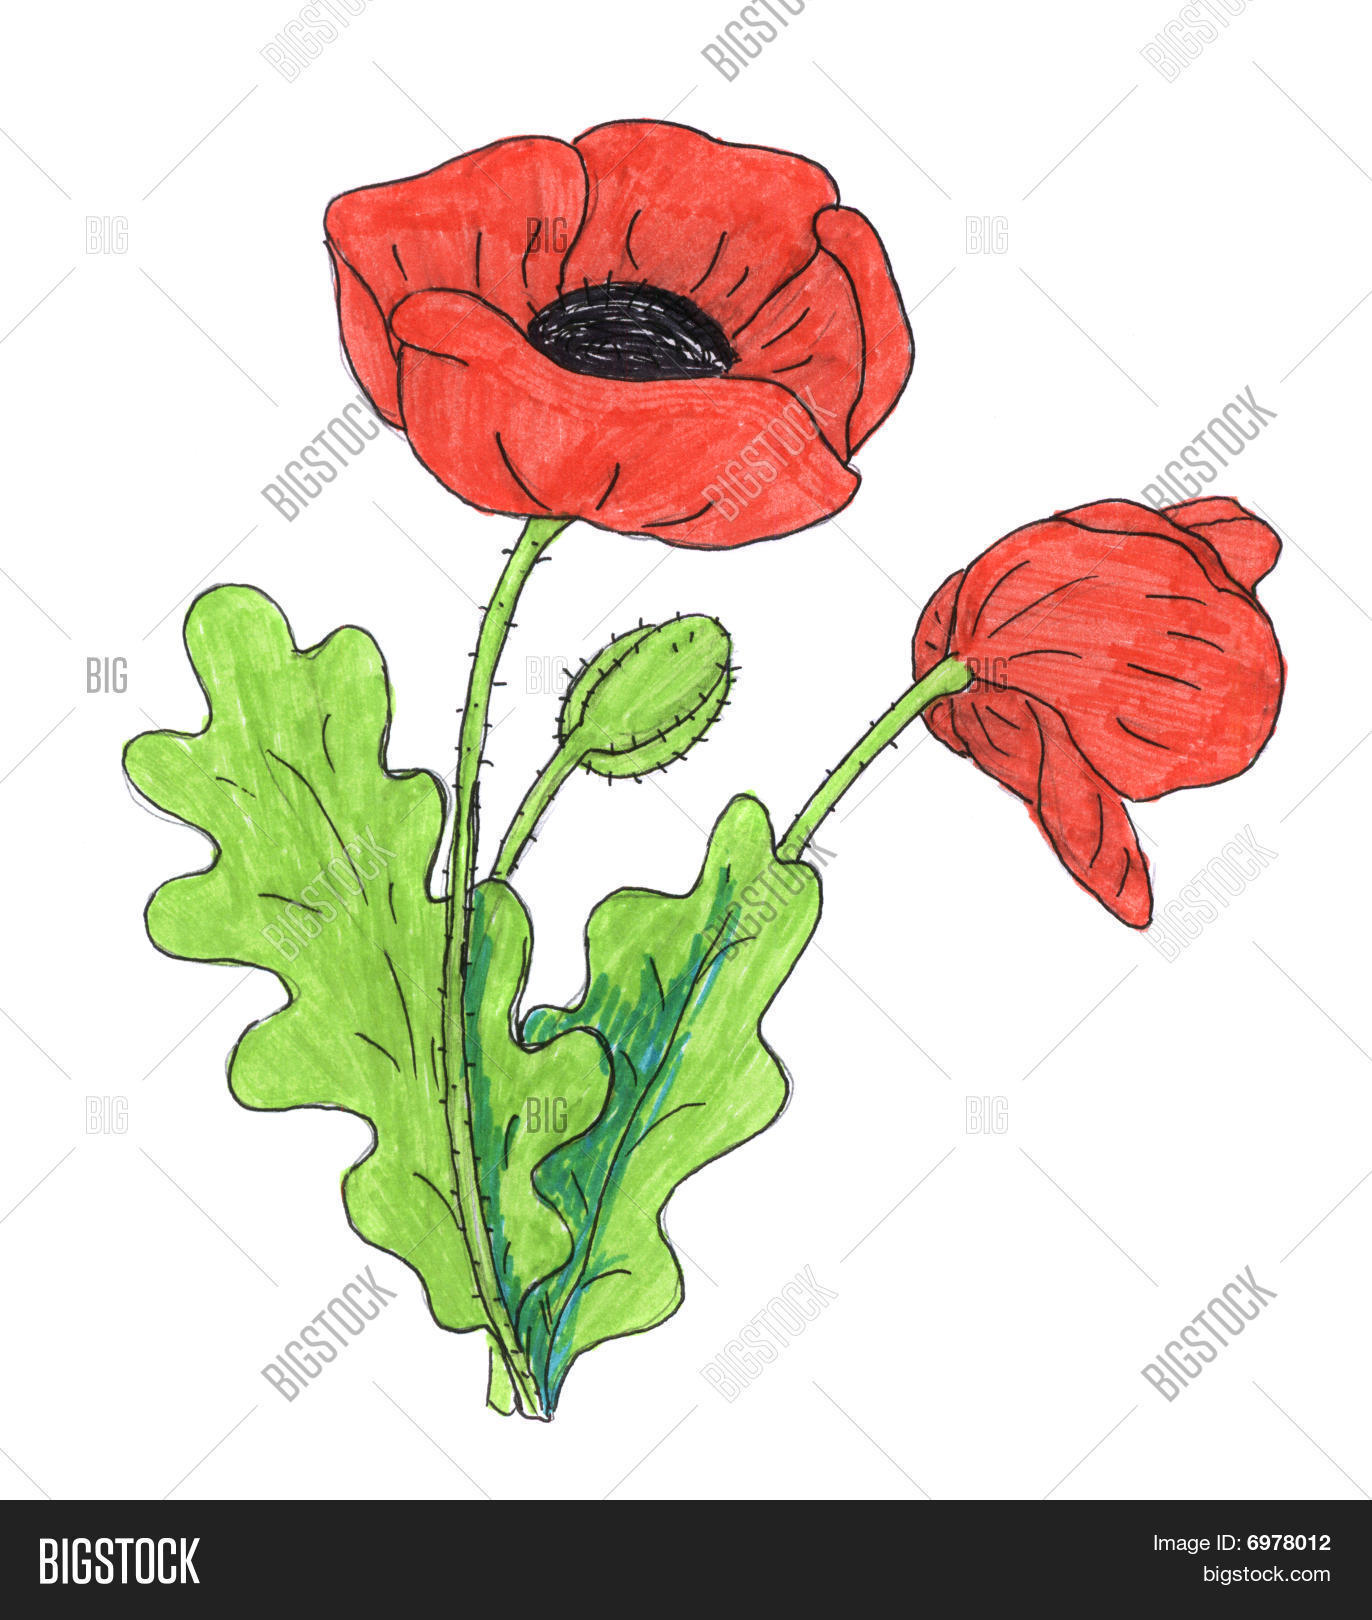 Poppy flower drawing image photo free trial bigstock poppy flower drawing mightylinksfo